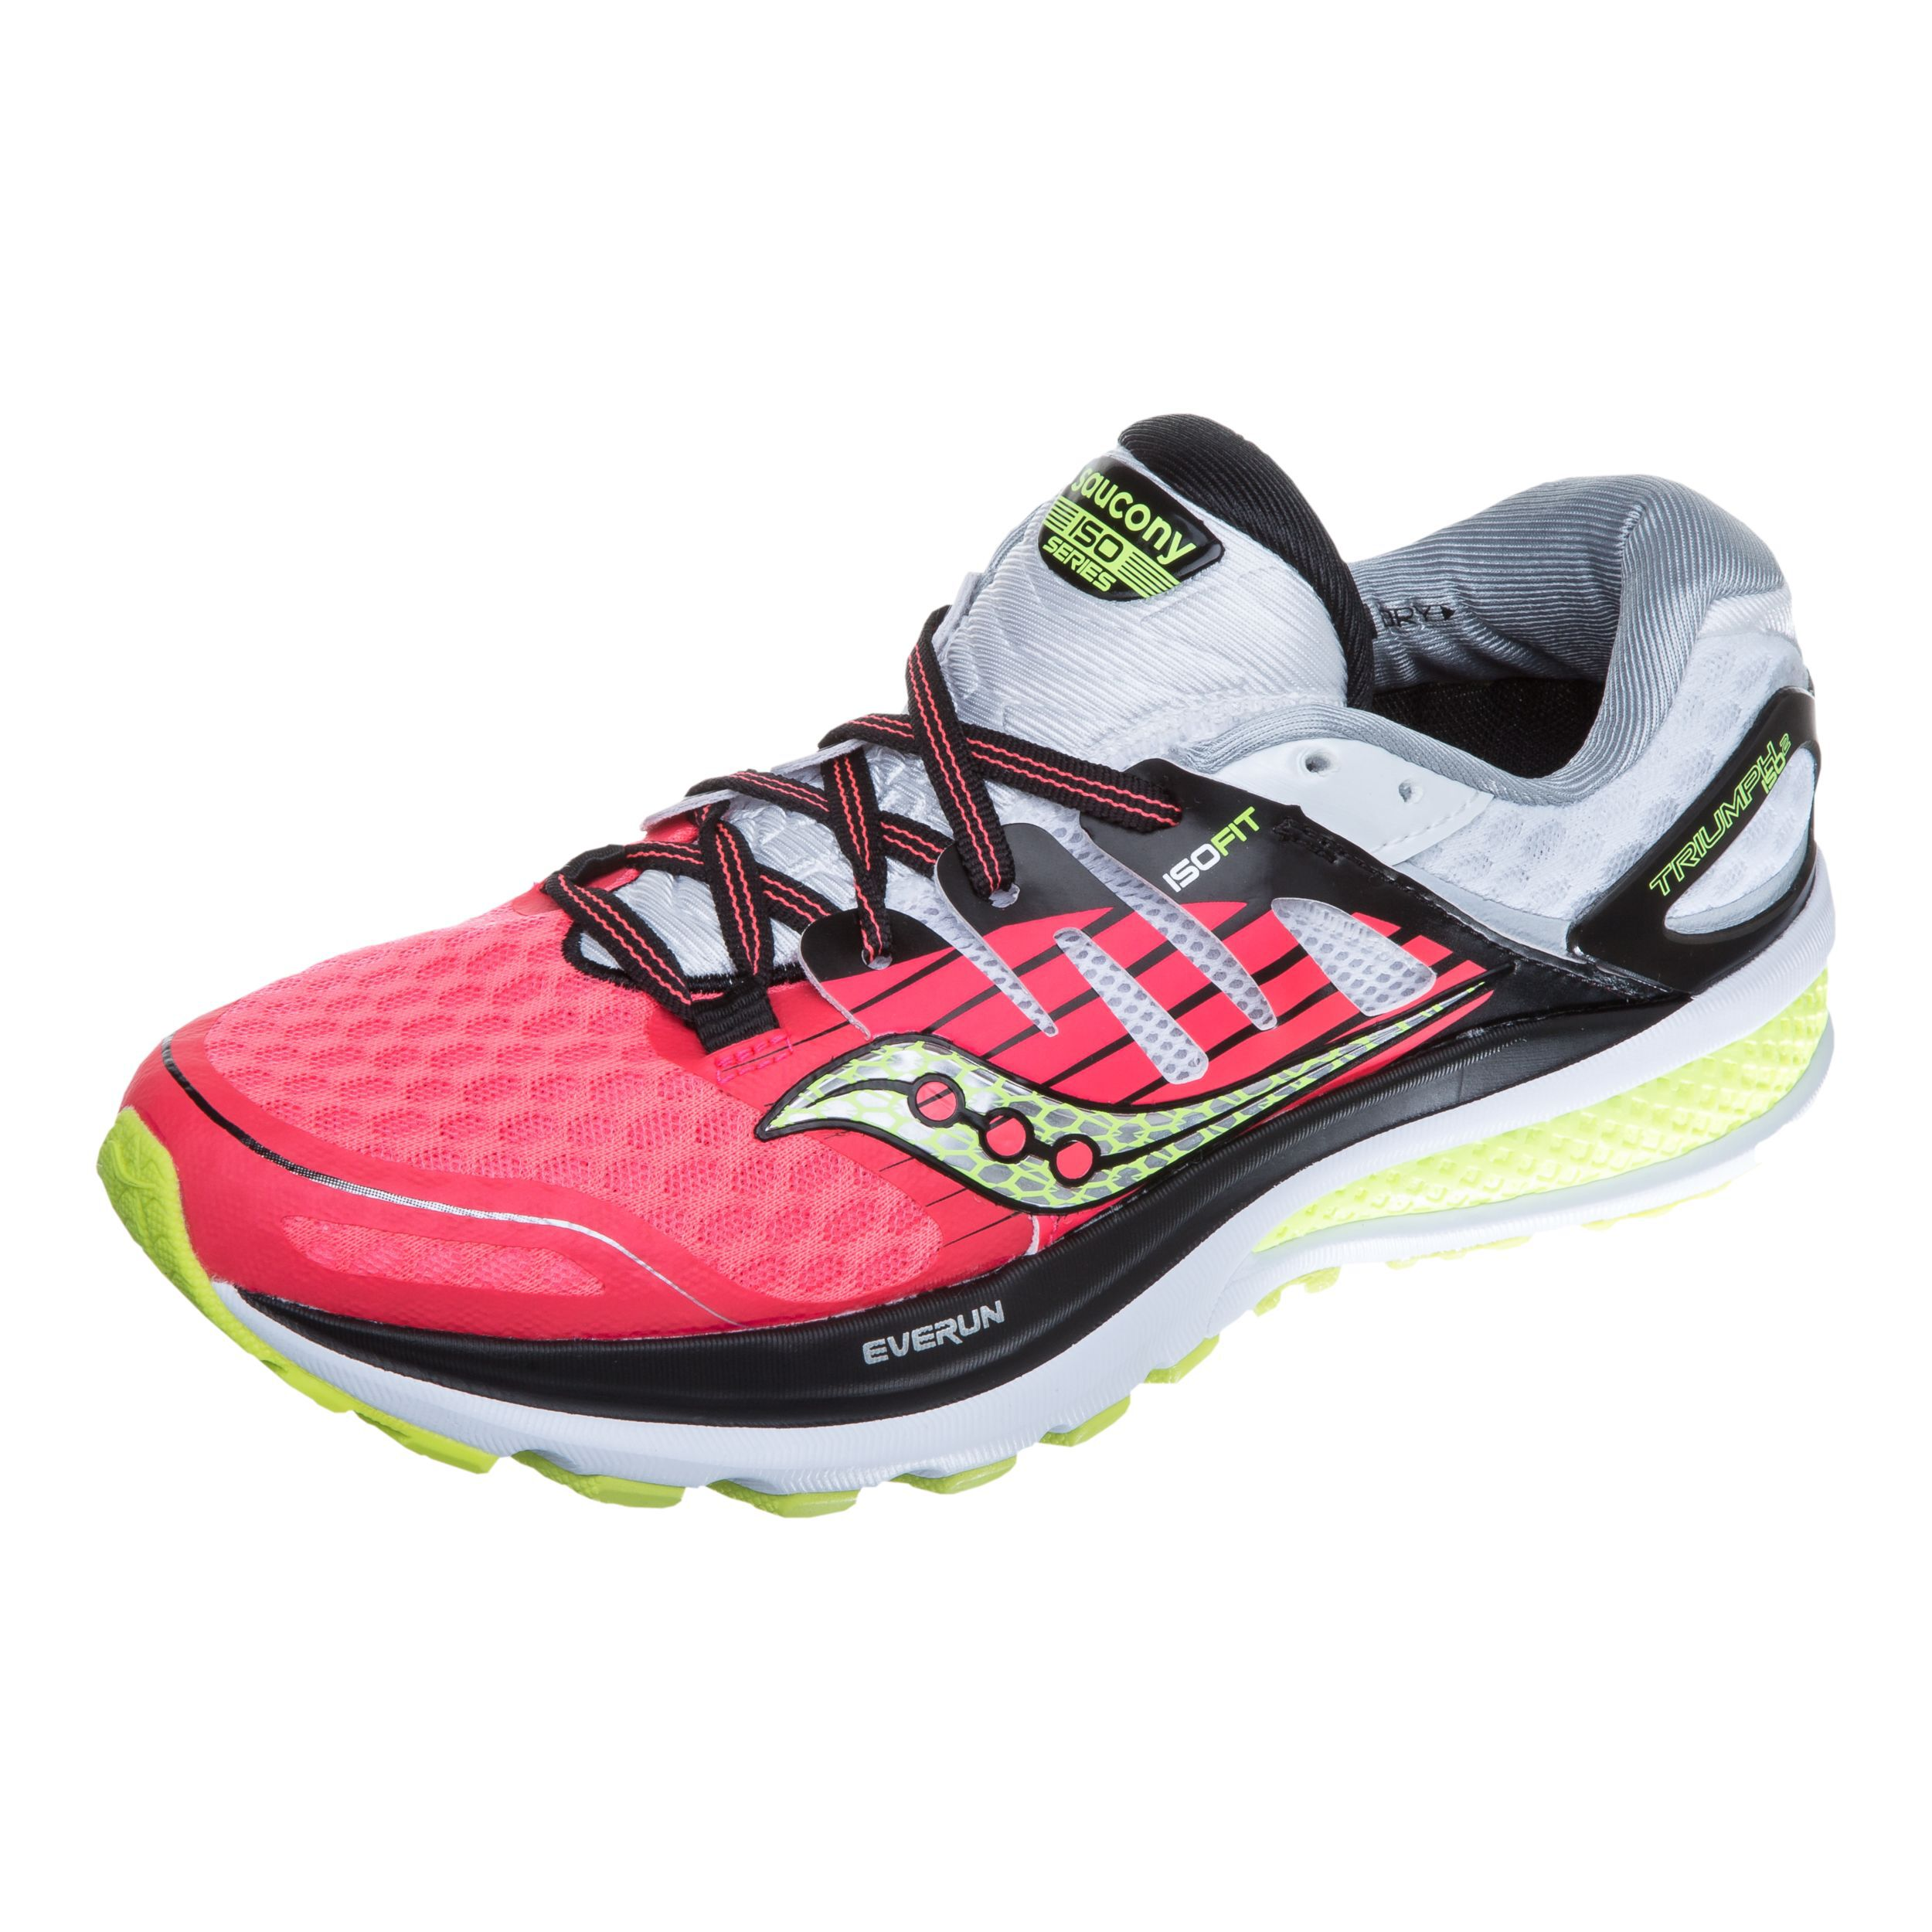 Saucony Triumph ISO 2 Cross Training Shoes in CoralSilver